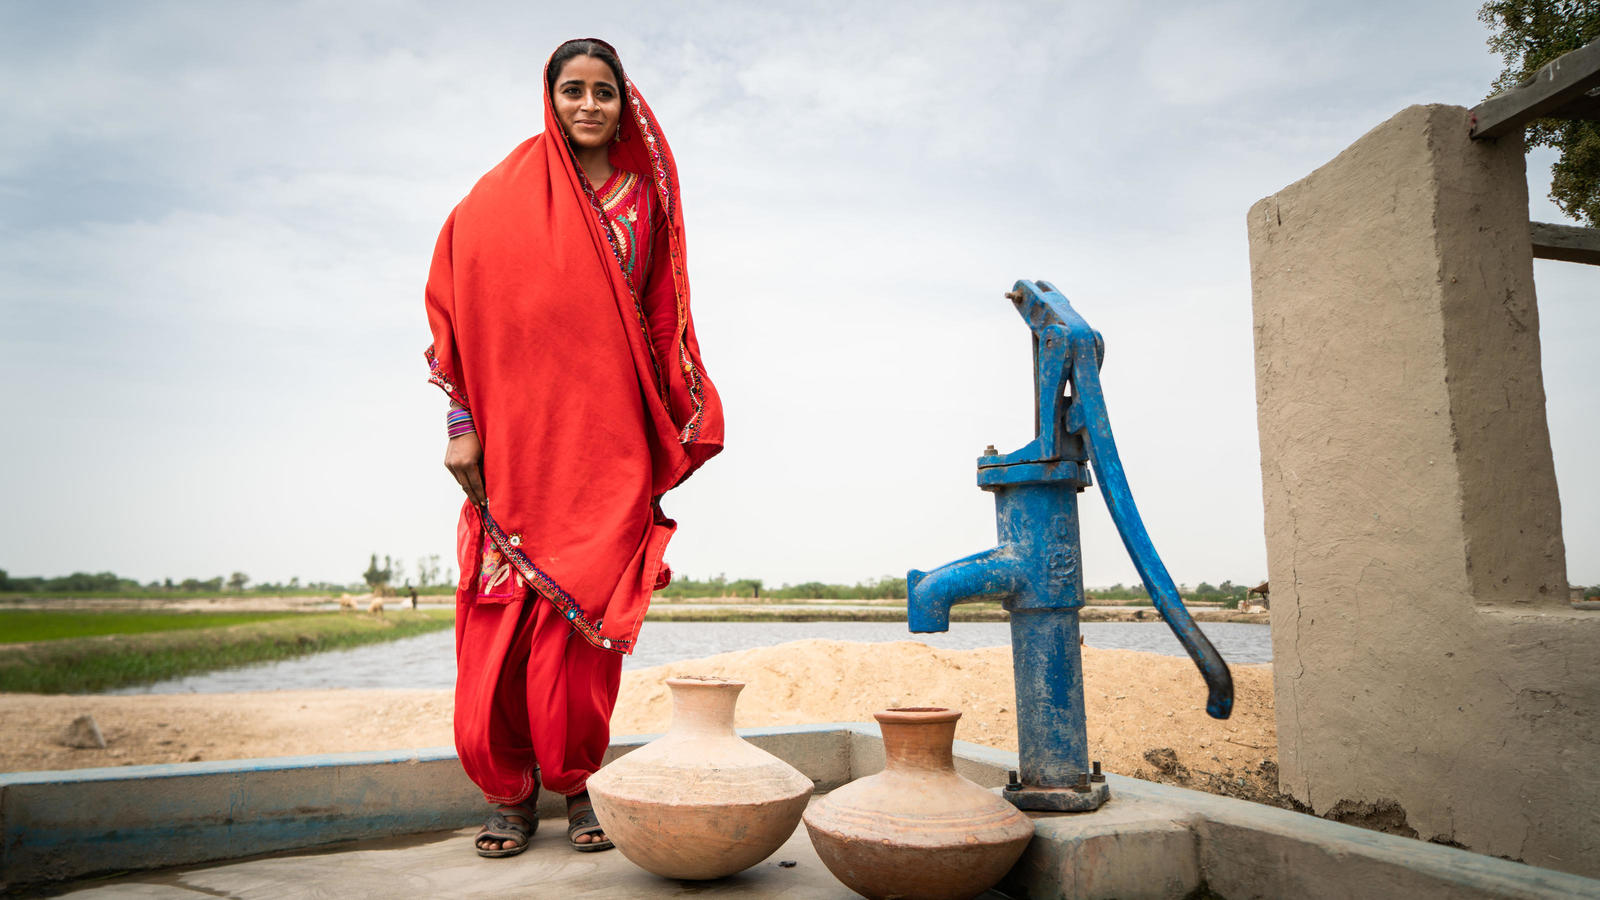 Sughra, 20, with a WaterAid installed water pump in the villlage of Muhammad Urs Sehejo, Chatto Chand Union Council, Thatta District, Sindh Province, Pakistan, September 2018.